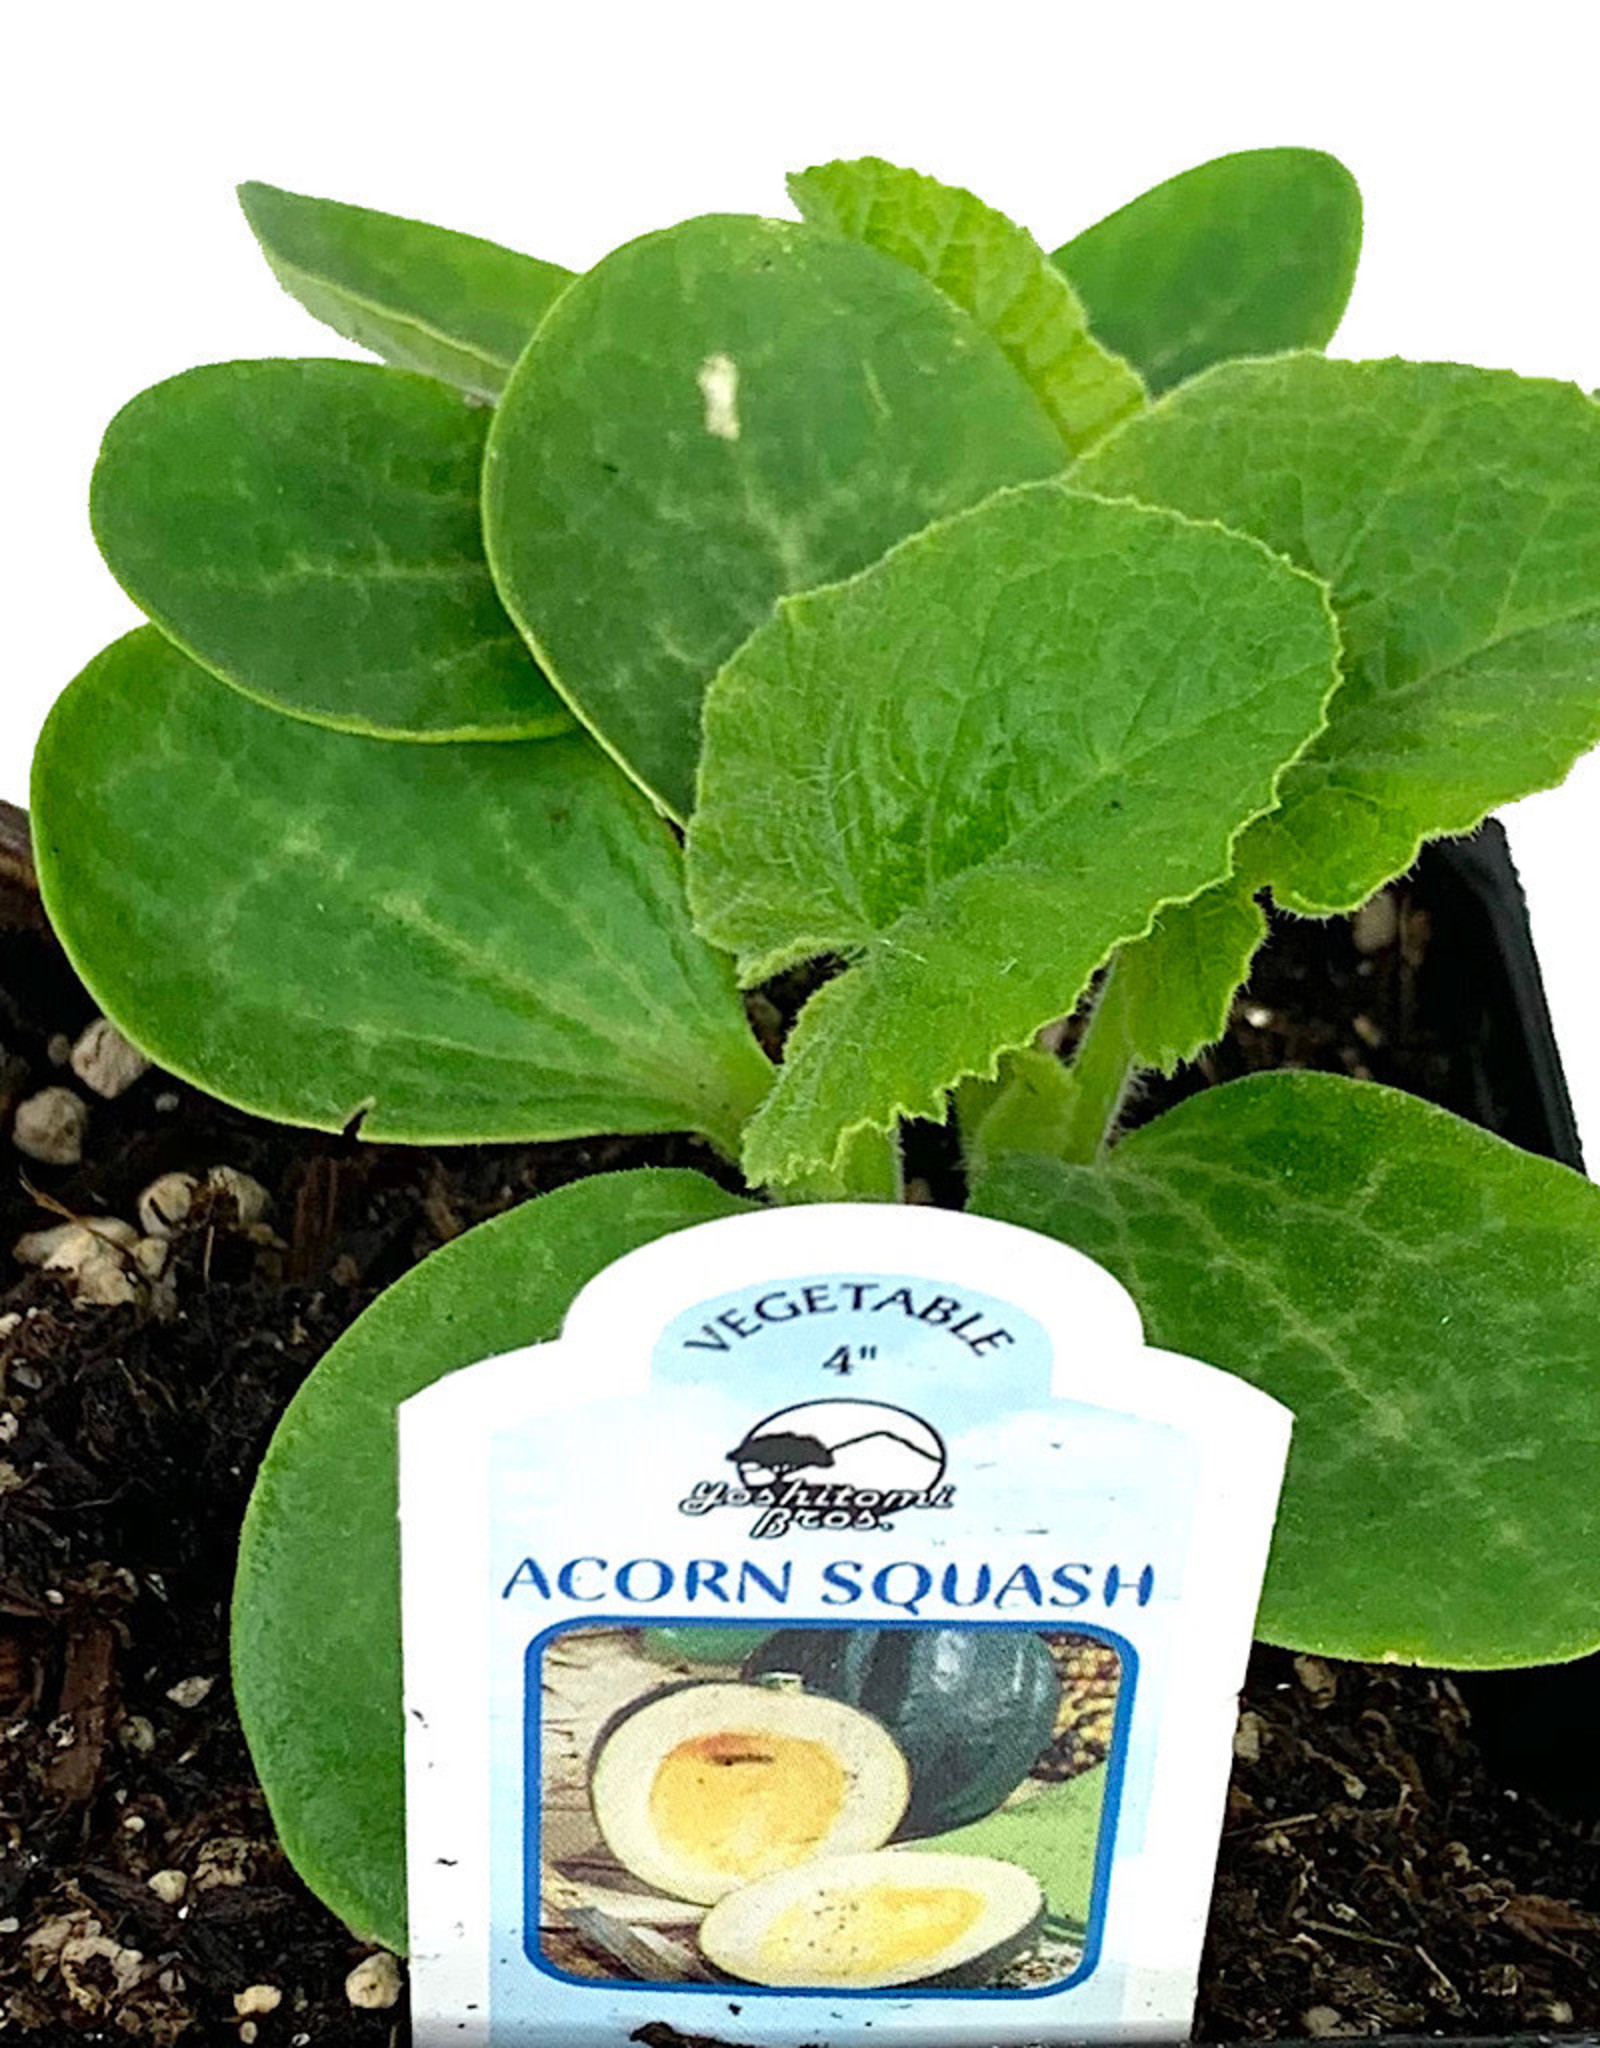 Squash 'Acorn Table Ace' - 4 inch